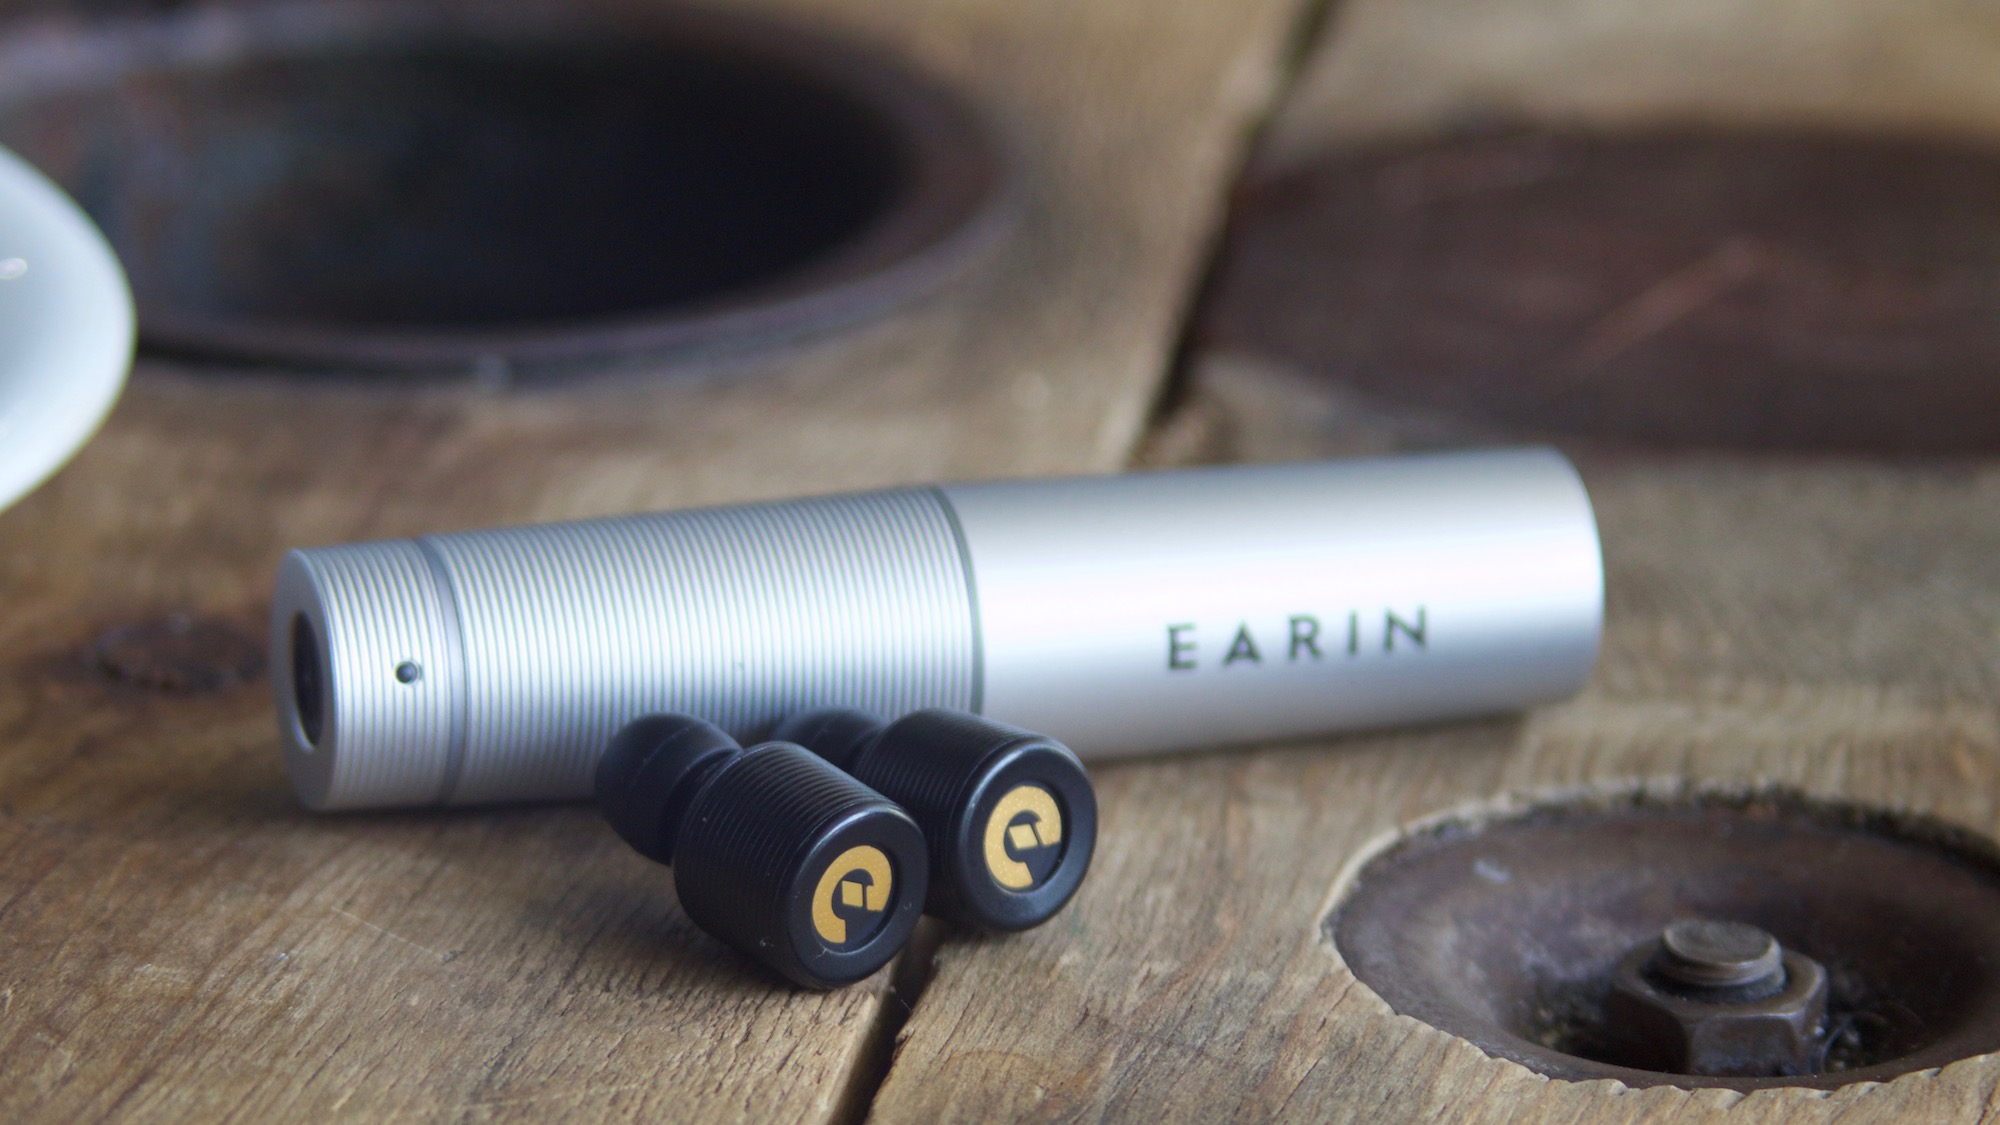 Earin true wireless earbud capsule w/ earbuds